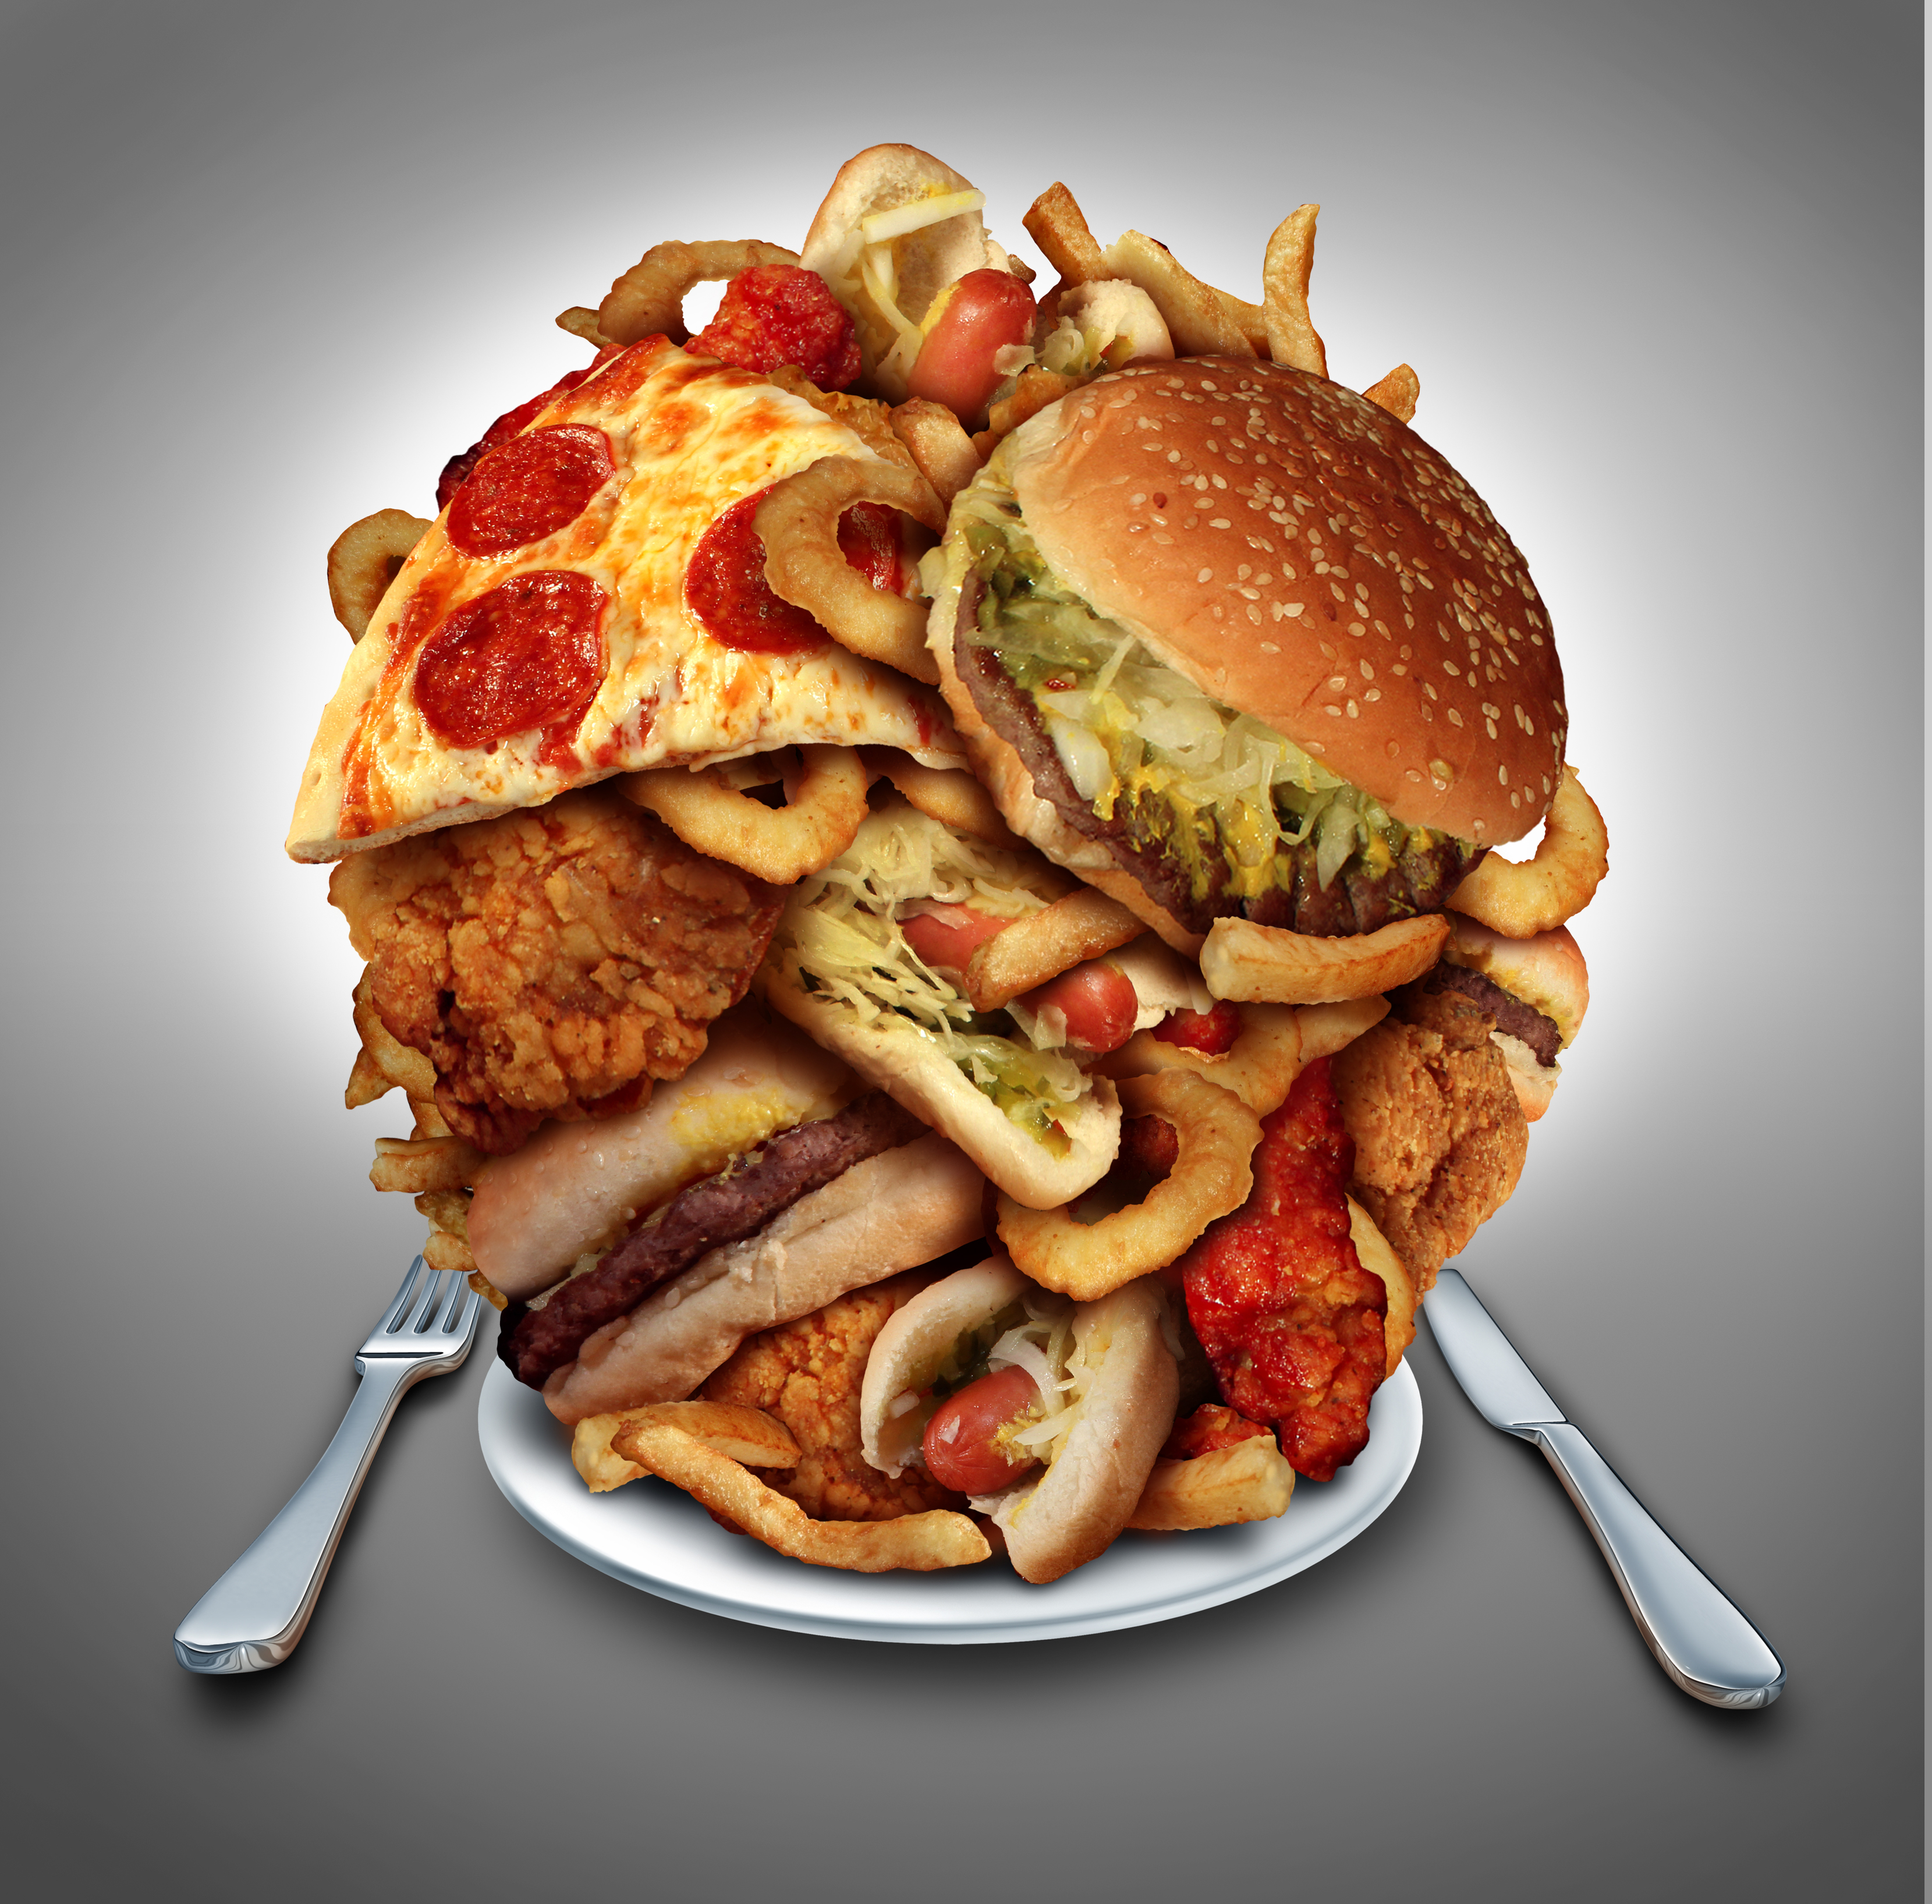 Calorie Count Reaches New Highs With 'Fattest' Fast Food